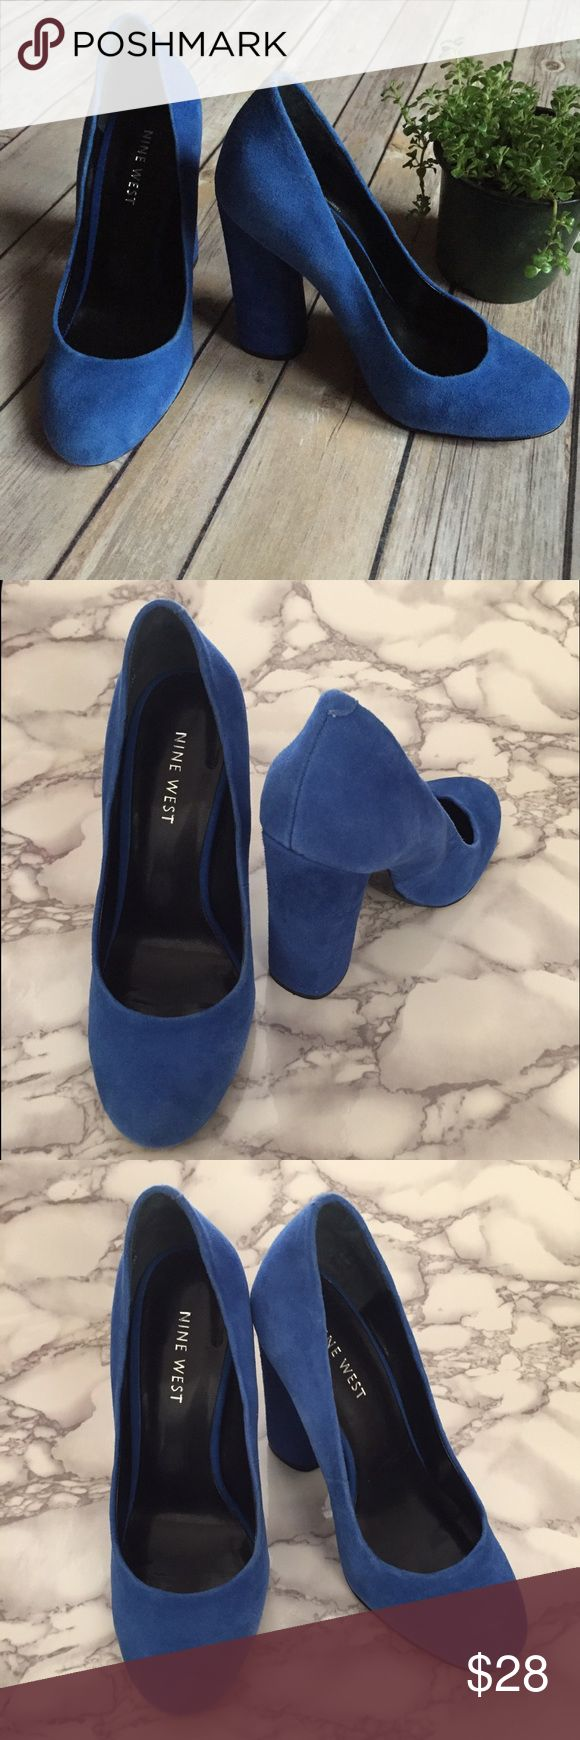 """👠 Nine West Blue Suede Pumps 👠 These are the real """"blue suede shoes"""" 🎶 These pumps are Nine West and a size 5 1/2. The heel is 5"""". No major wear on these. They are true beauties. 👠 👠 Nine West Shoes Heels"""